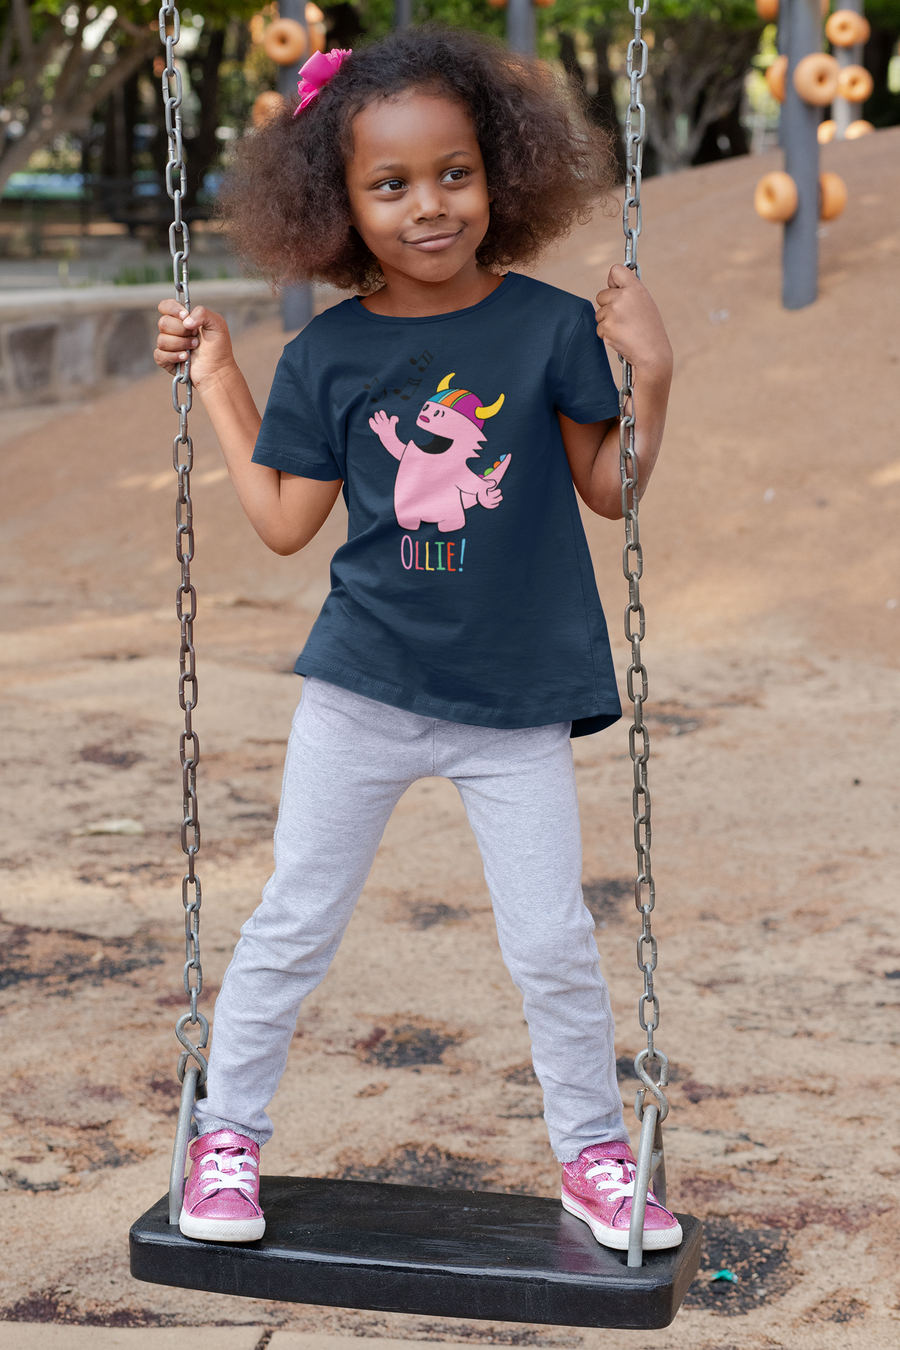 Ollie! Tooth Brigade T-Shirt (Unisex YOUTH SIZES)